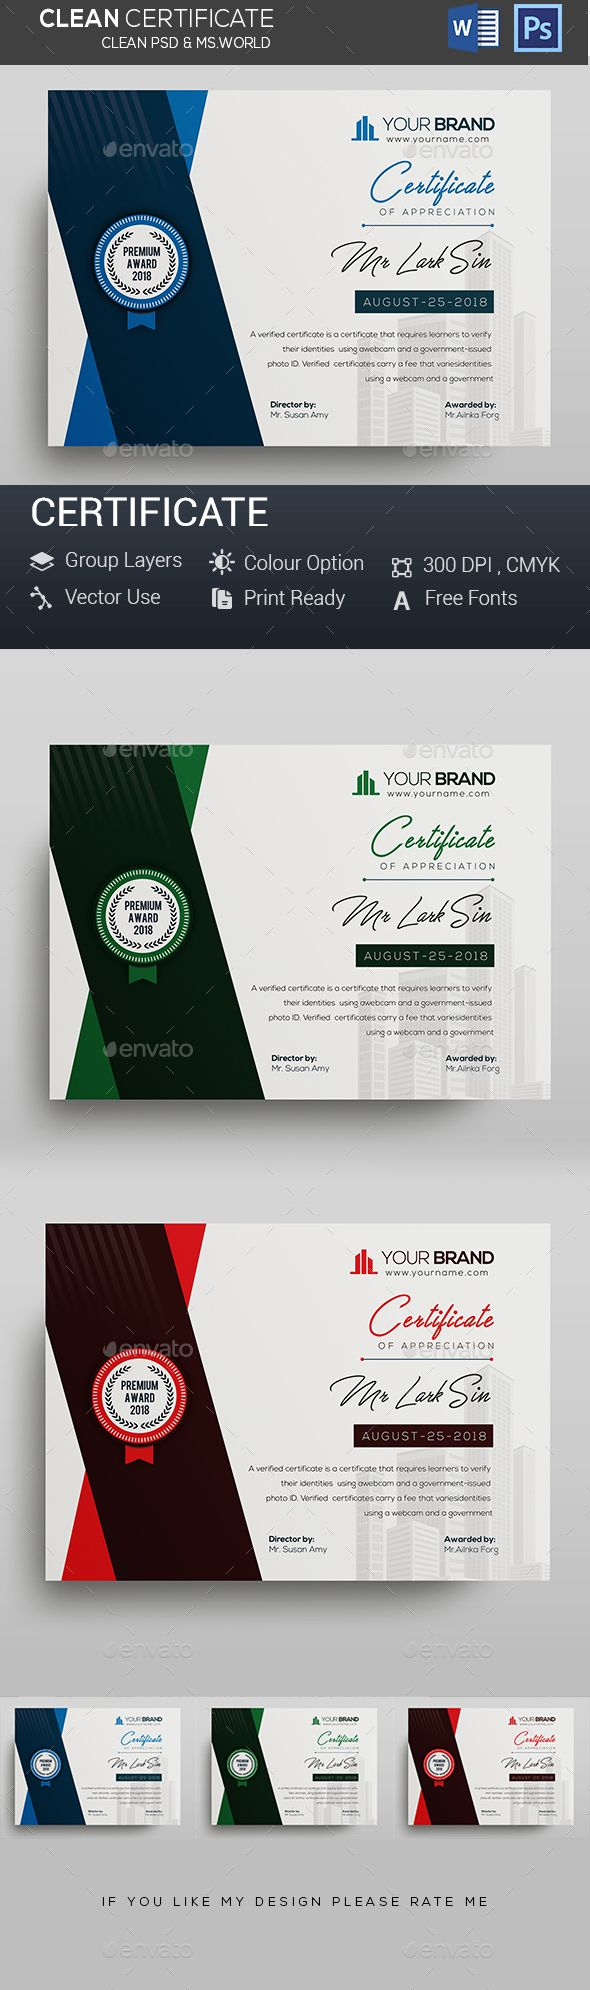 Certificate #modern certificate #simple certificate  • Download here → https://graphicriver.net/item/certificate/21245280?ref=pxcr